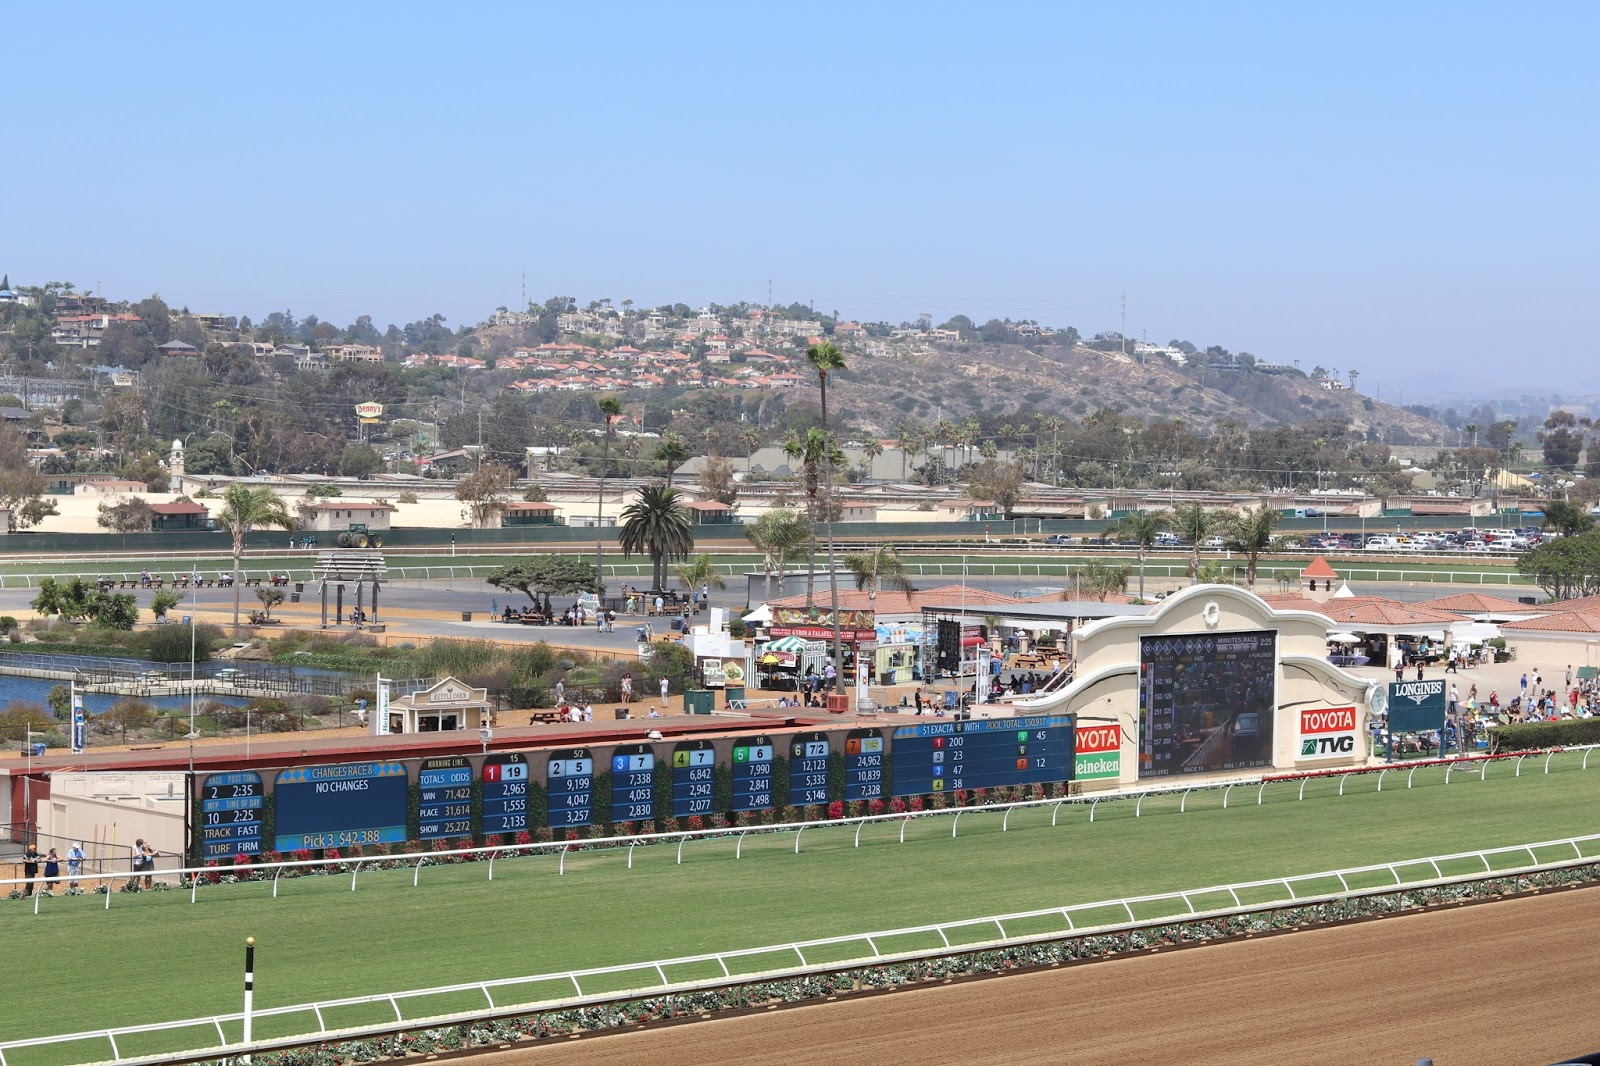 Opening Day at the Del Mar Racetrack 2016, Opening Day at the Del Mar Racetrack 2016 view, stretch run view of racetrack